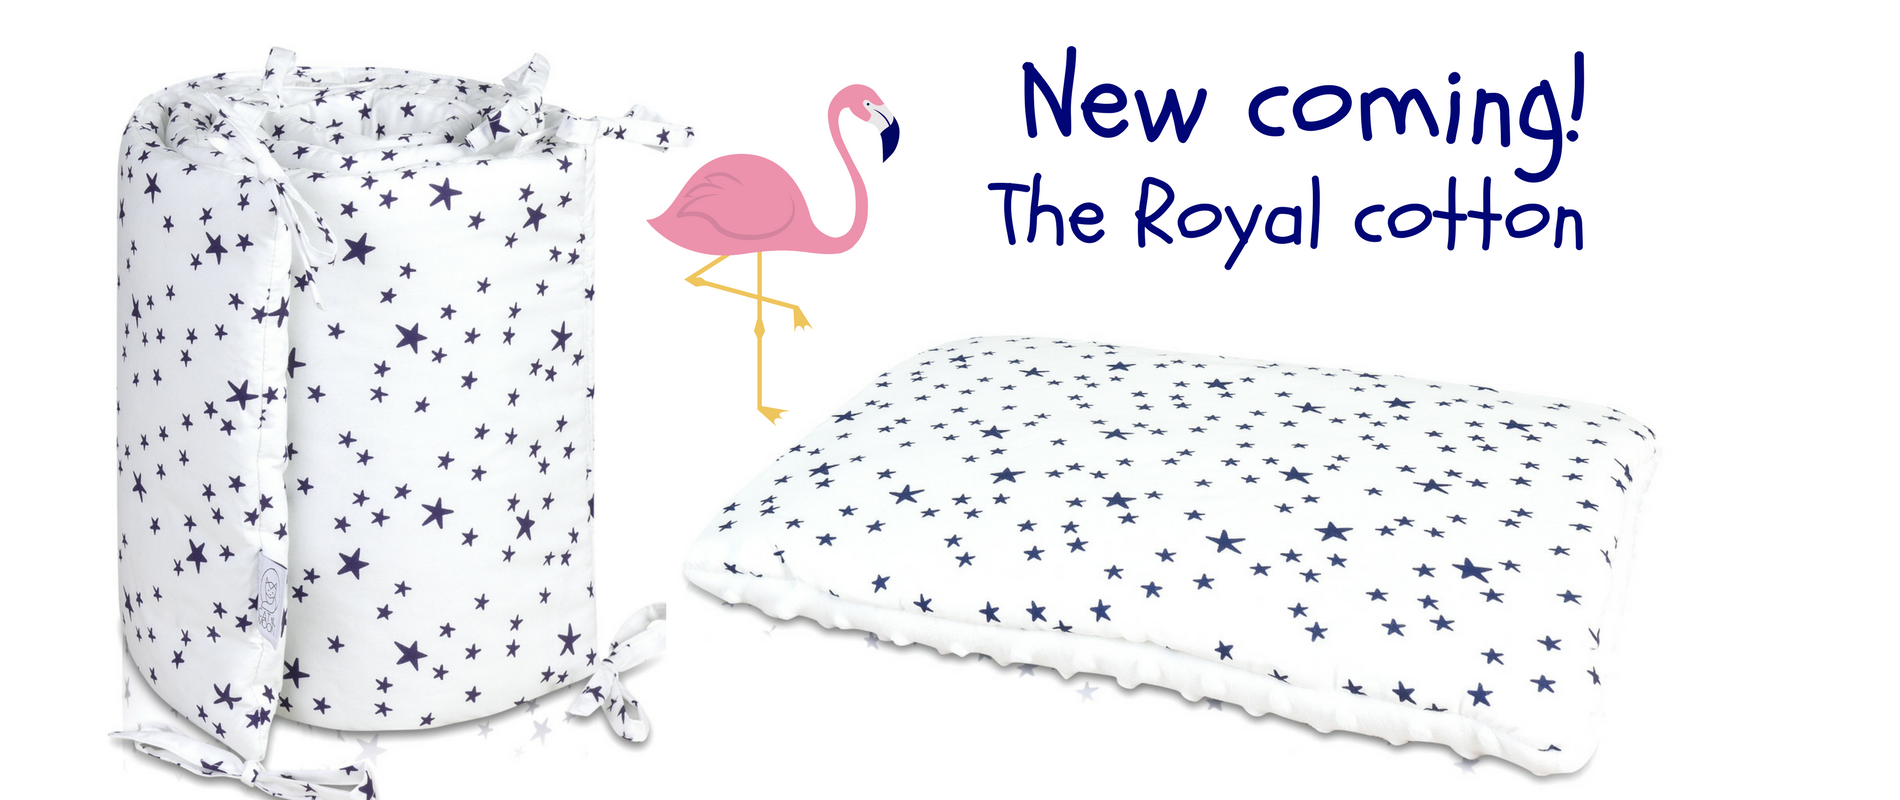 Kolejcja The Royal Cotton